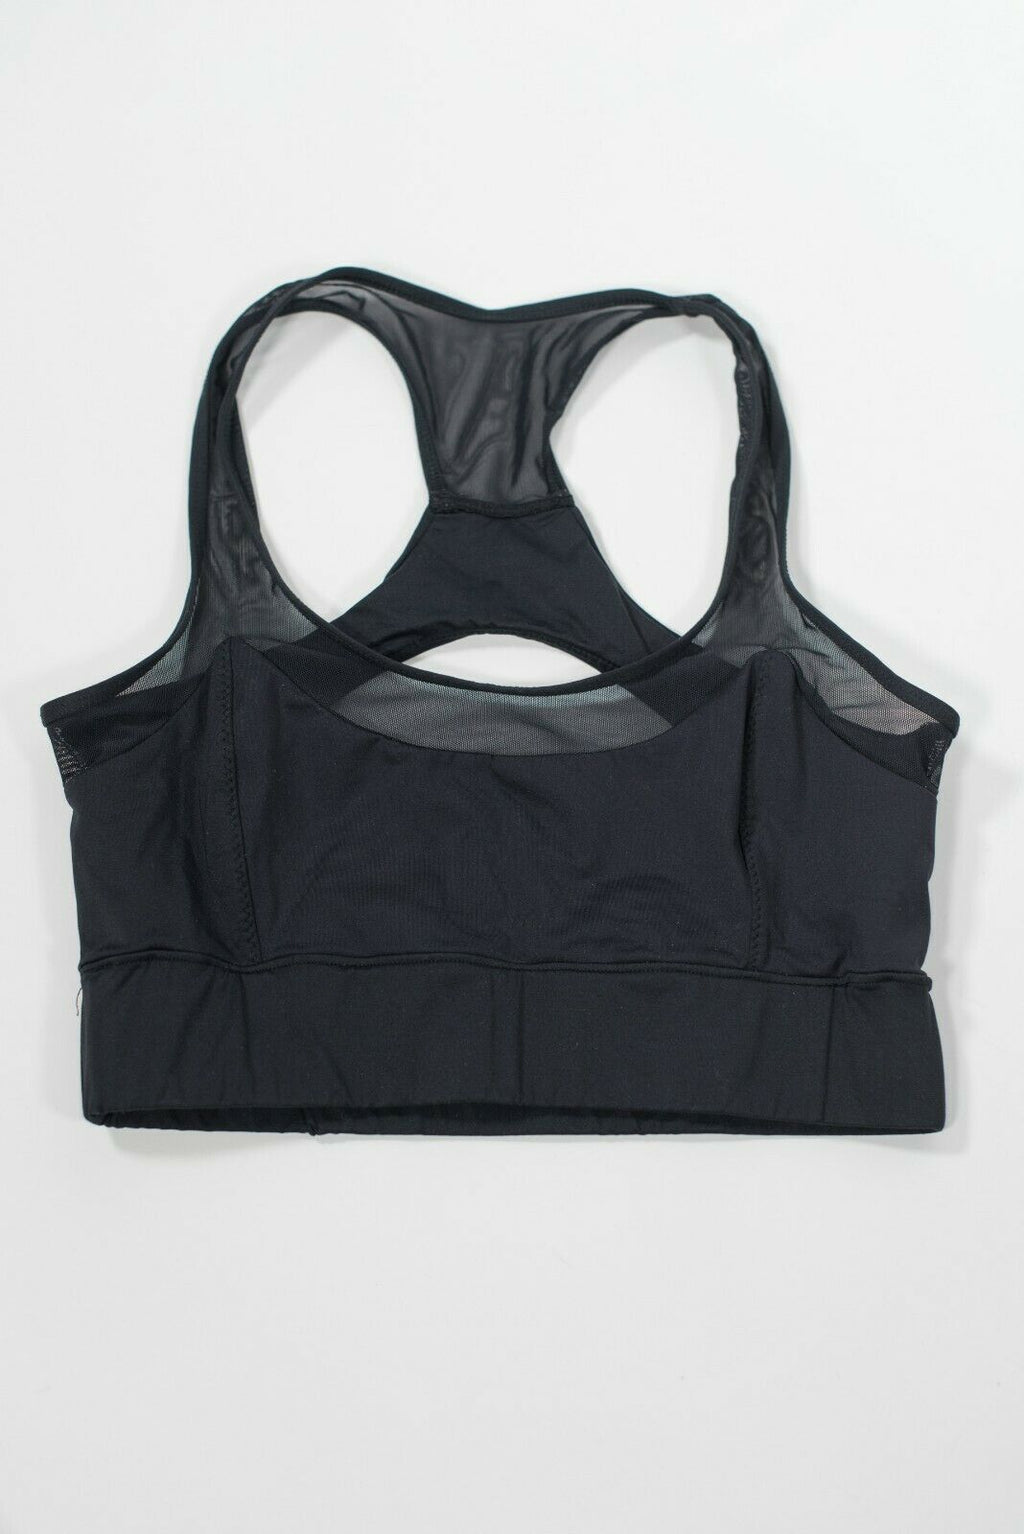 Varley Women's Size Medium Black Sports Bra Mesh Shirt Open Back Cropped Top